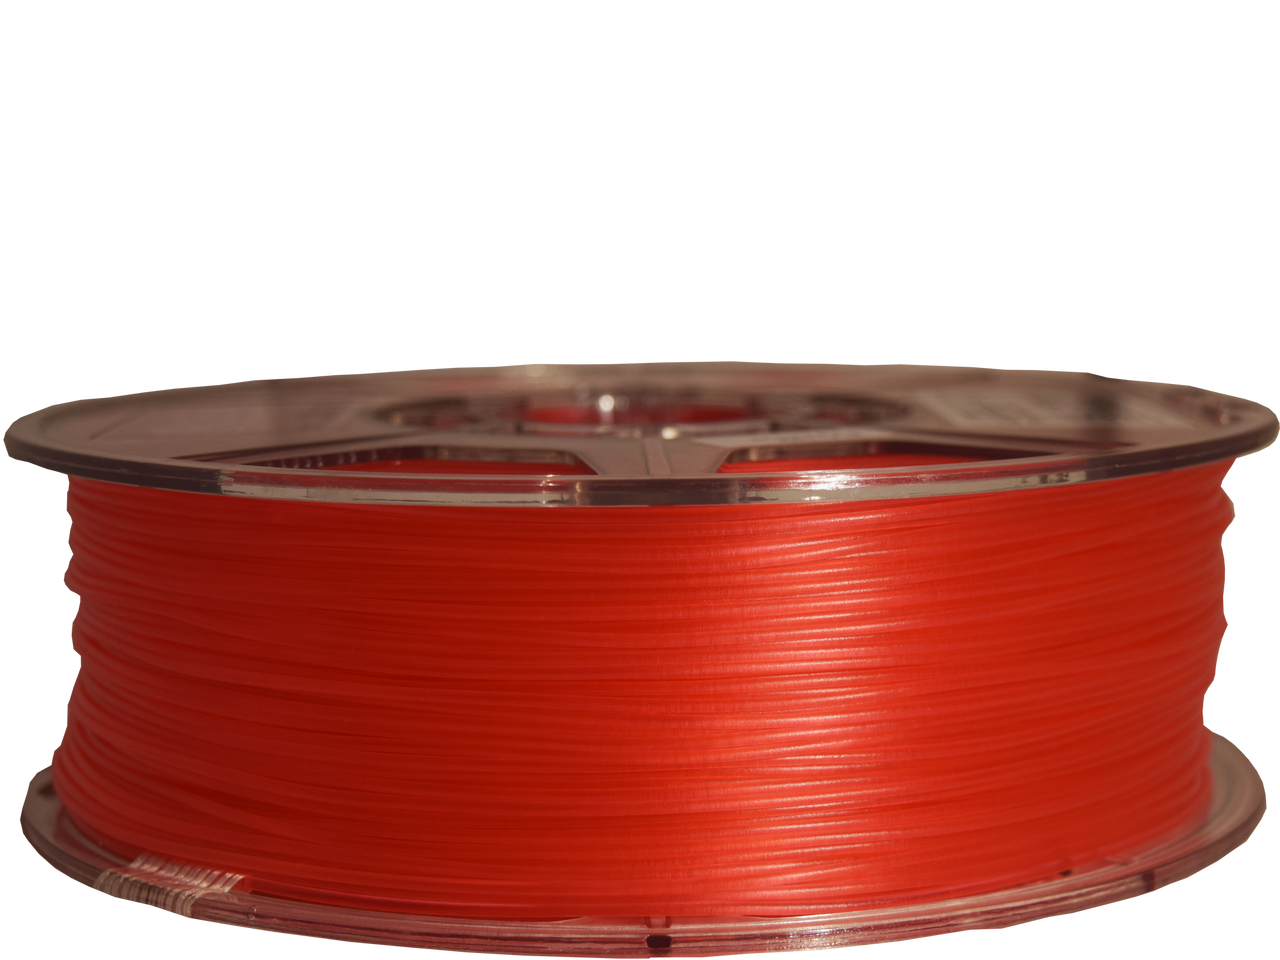 RedTans20mp1_copy_1280x1280?v=1535474735 replay 3d stained glass pla red filament